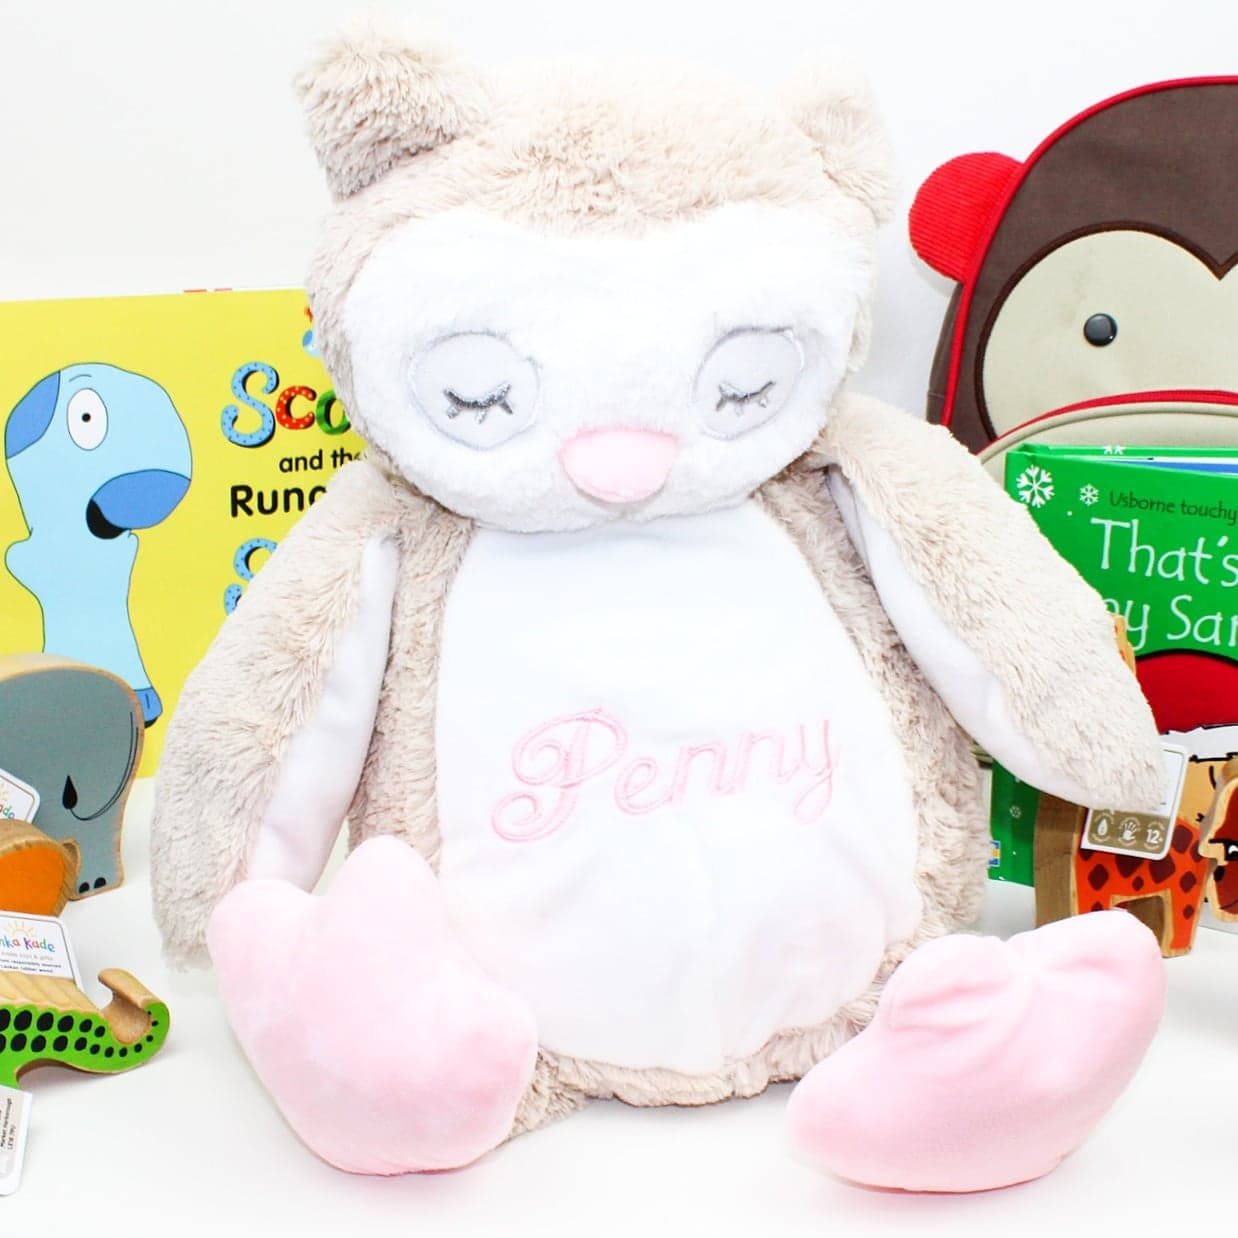 Toddler's Christmas Gift Guide With Able Labels